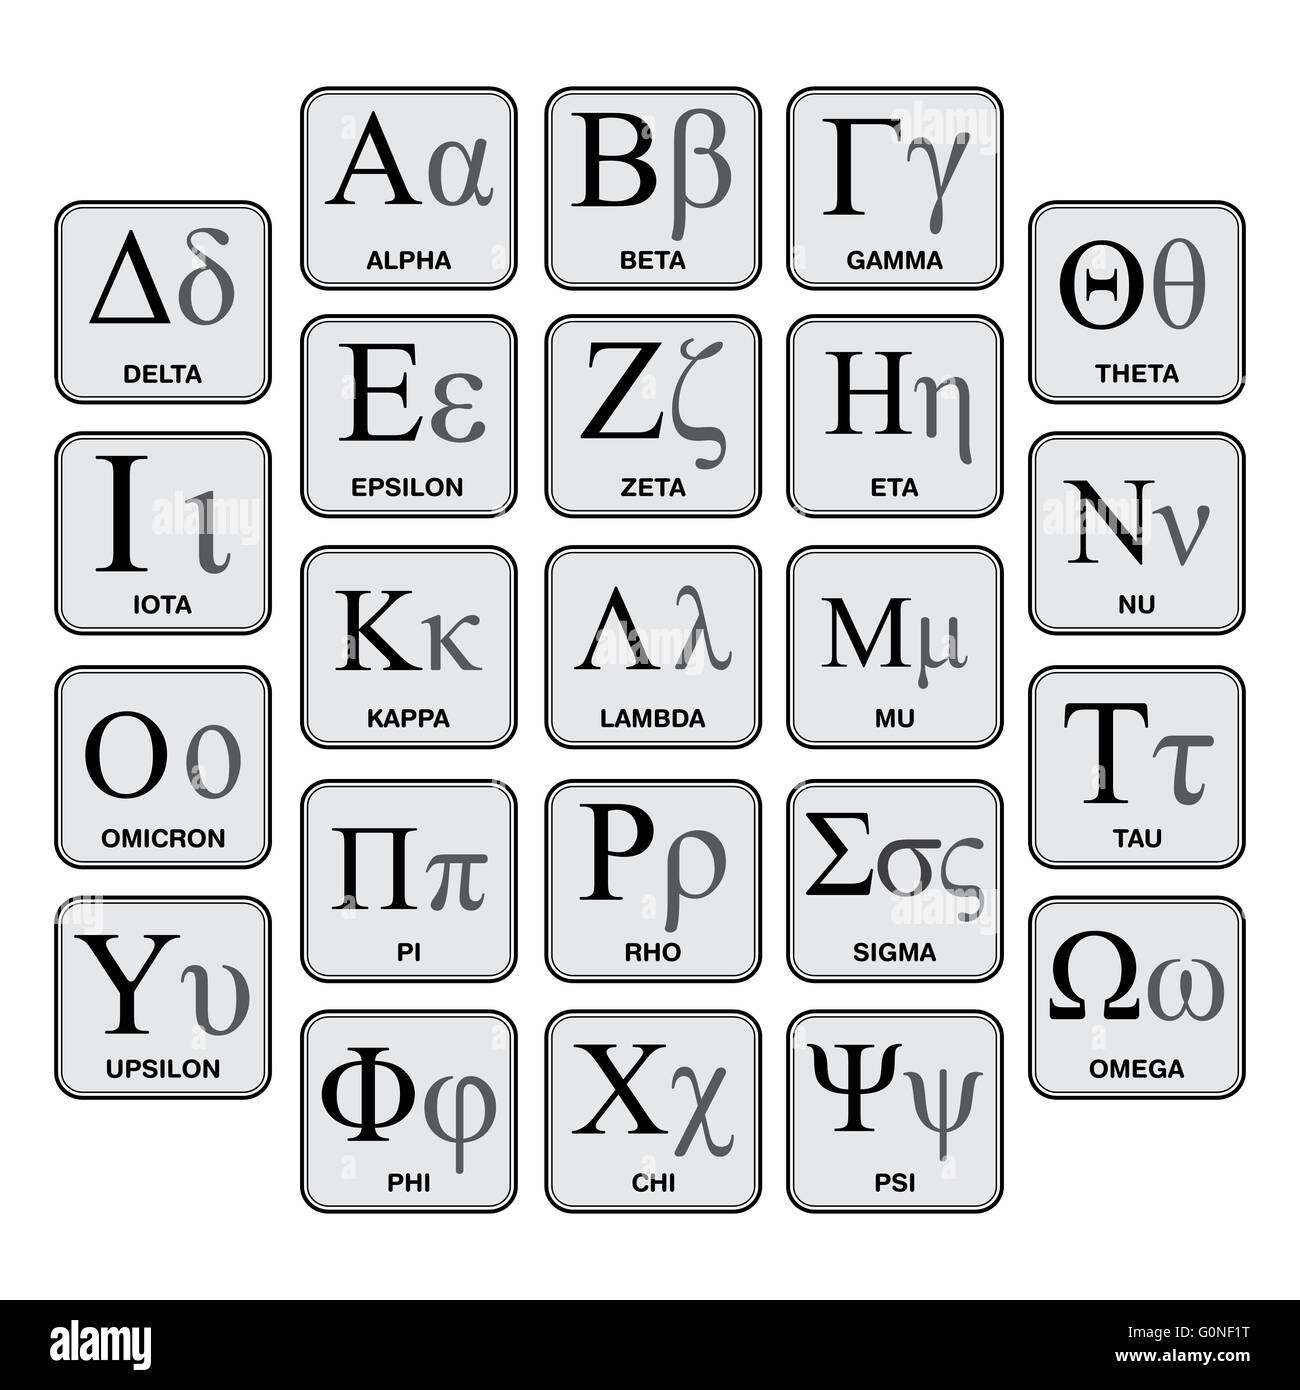 Greek alphabet and symbols stock vector art illustration vector greek alphabet and symbols biocorpaavc Image collections